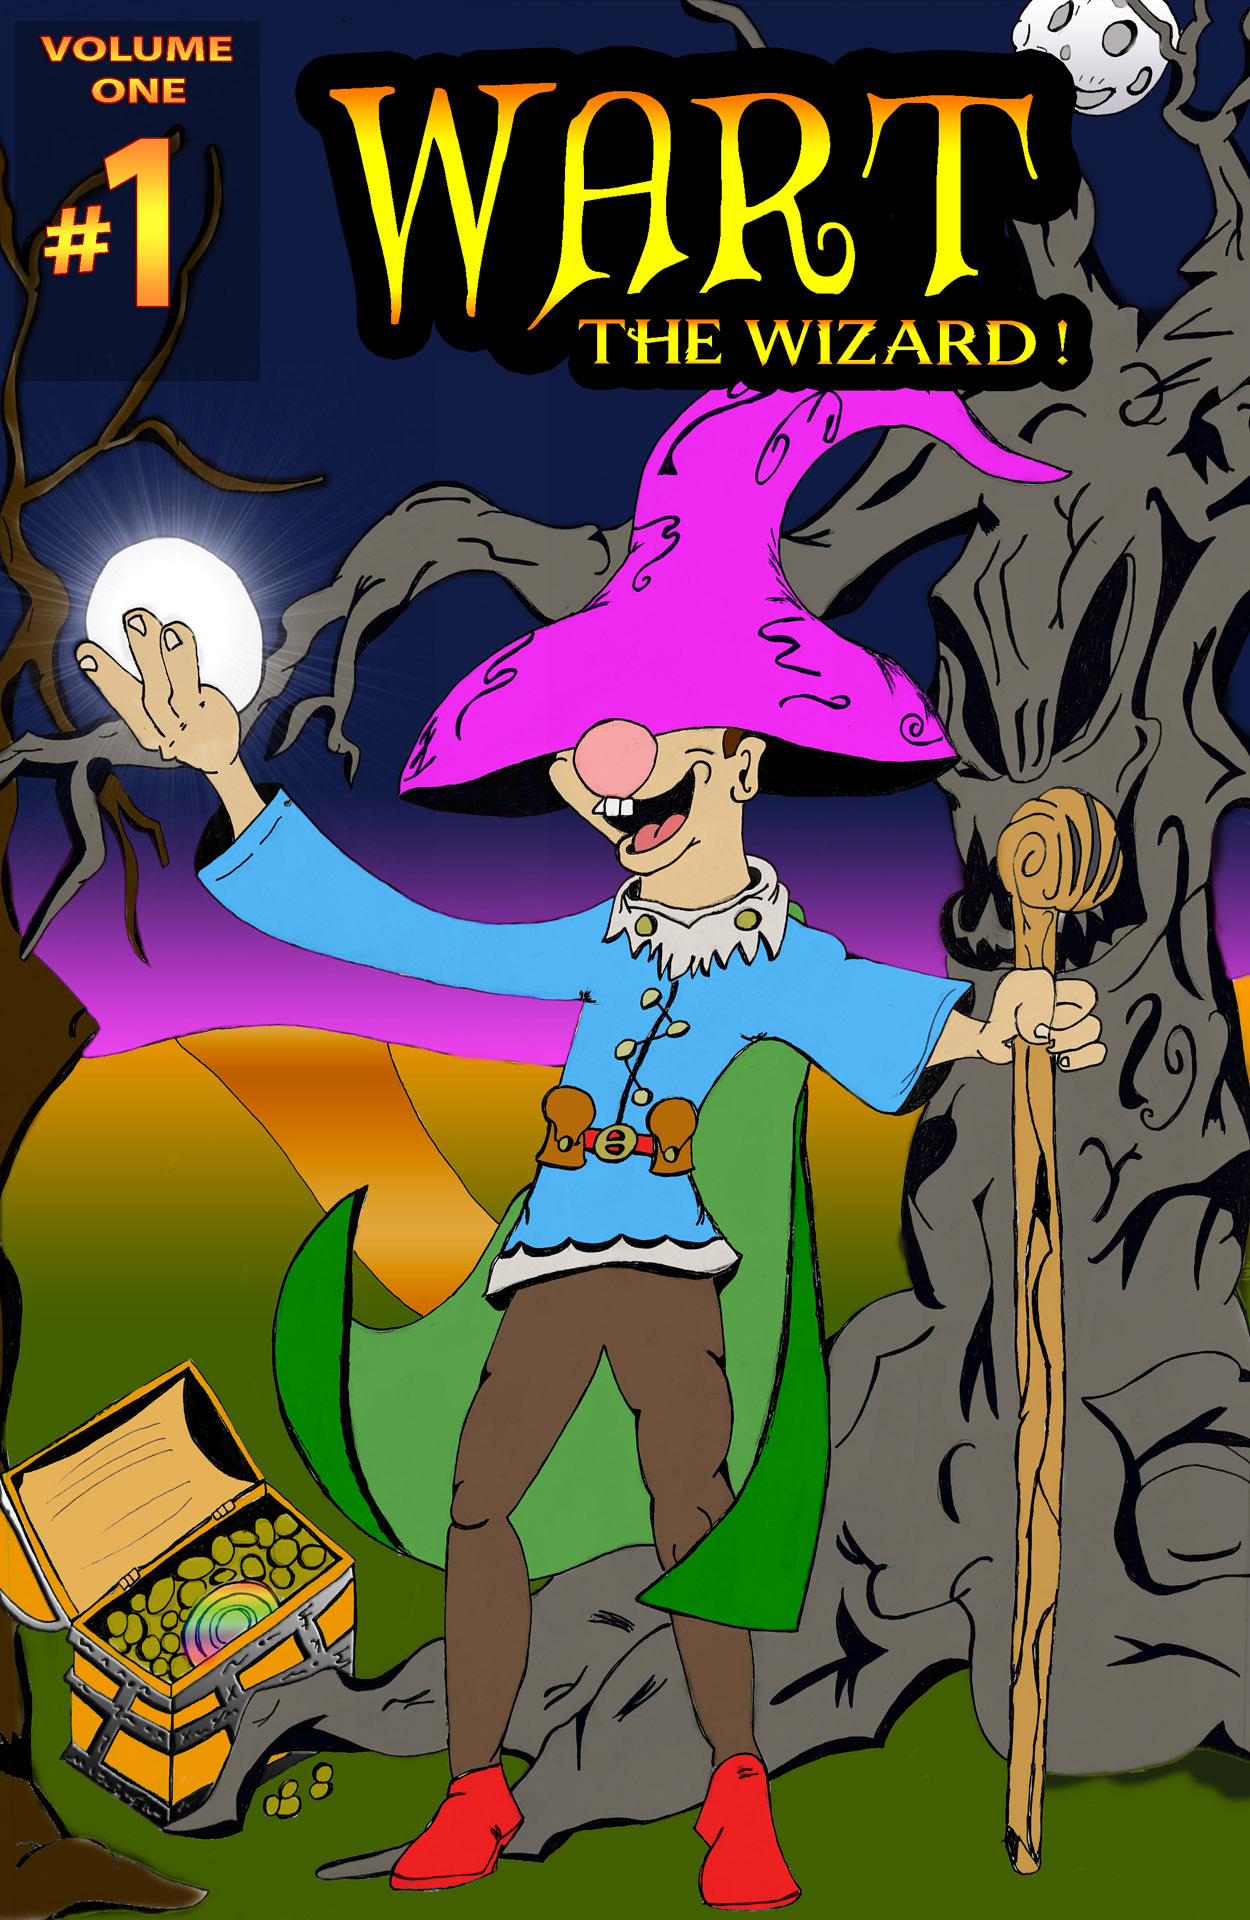 WART THE WIZARD